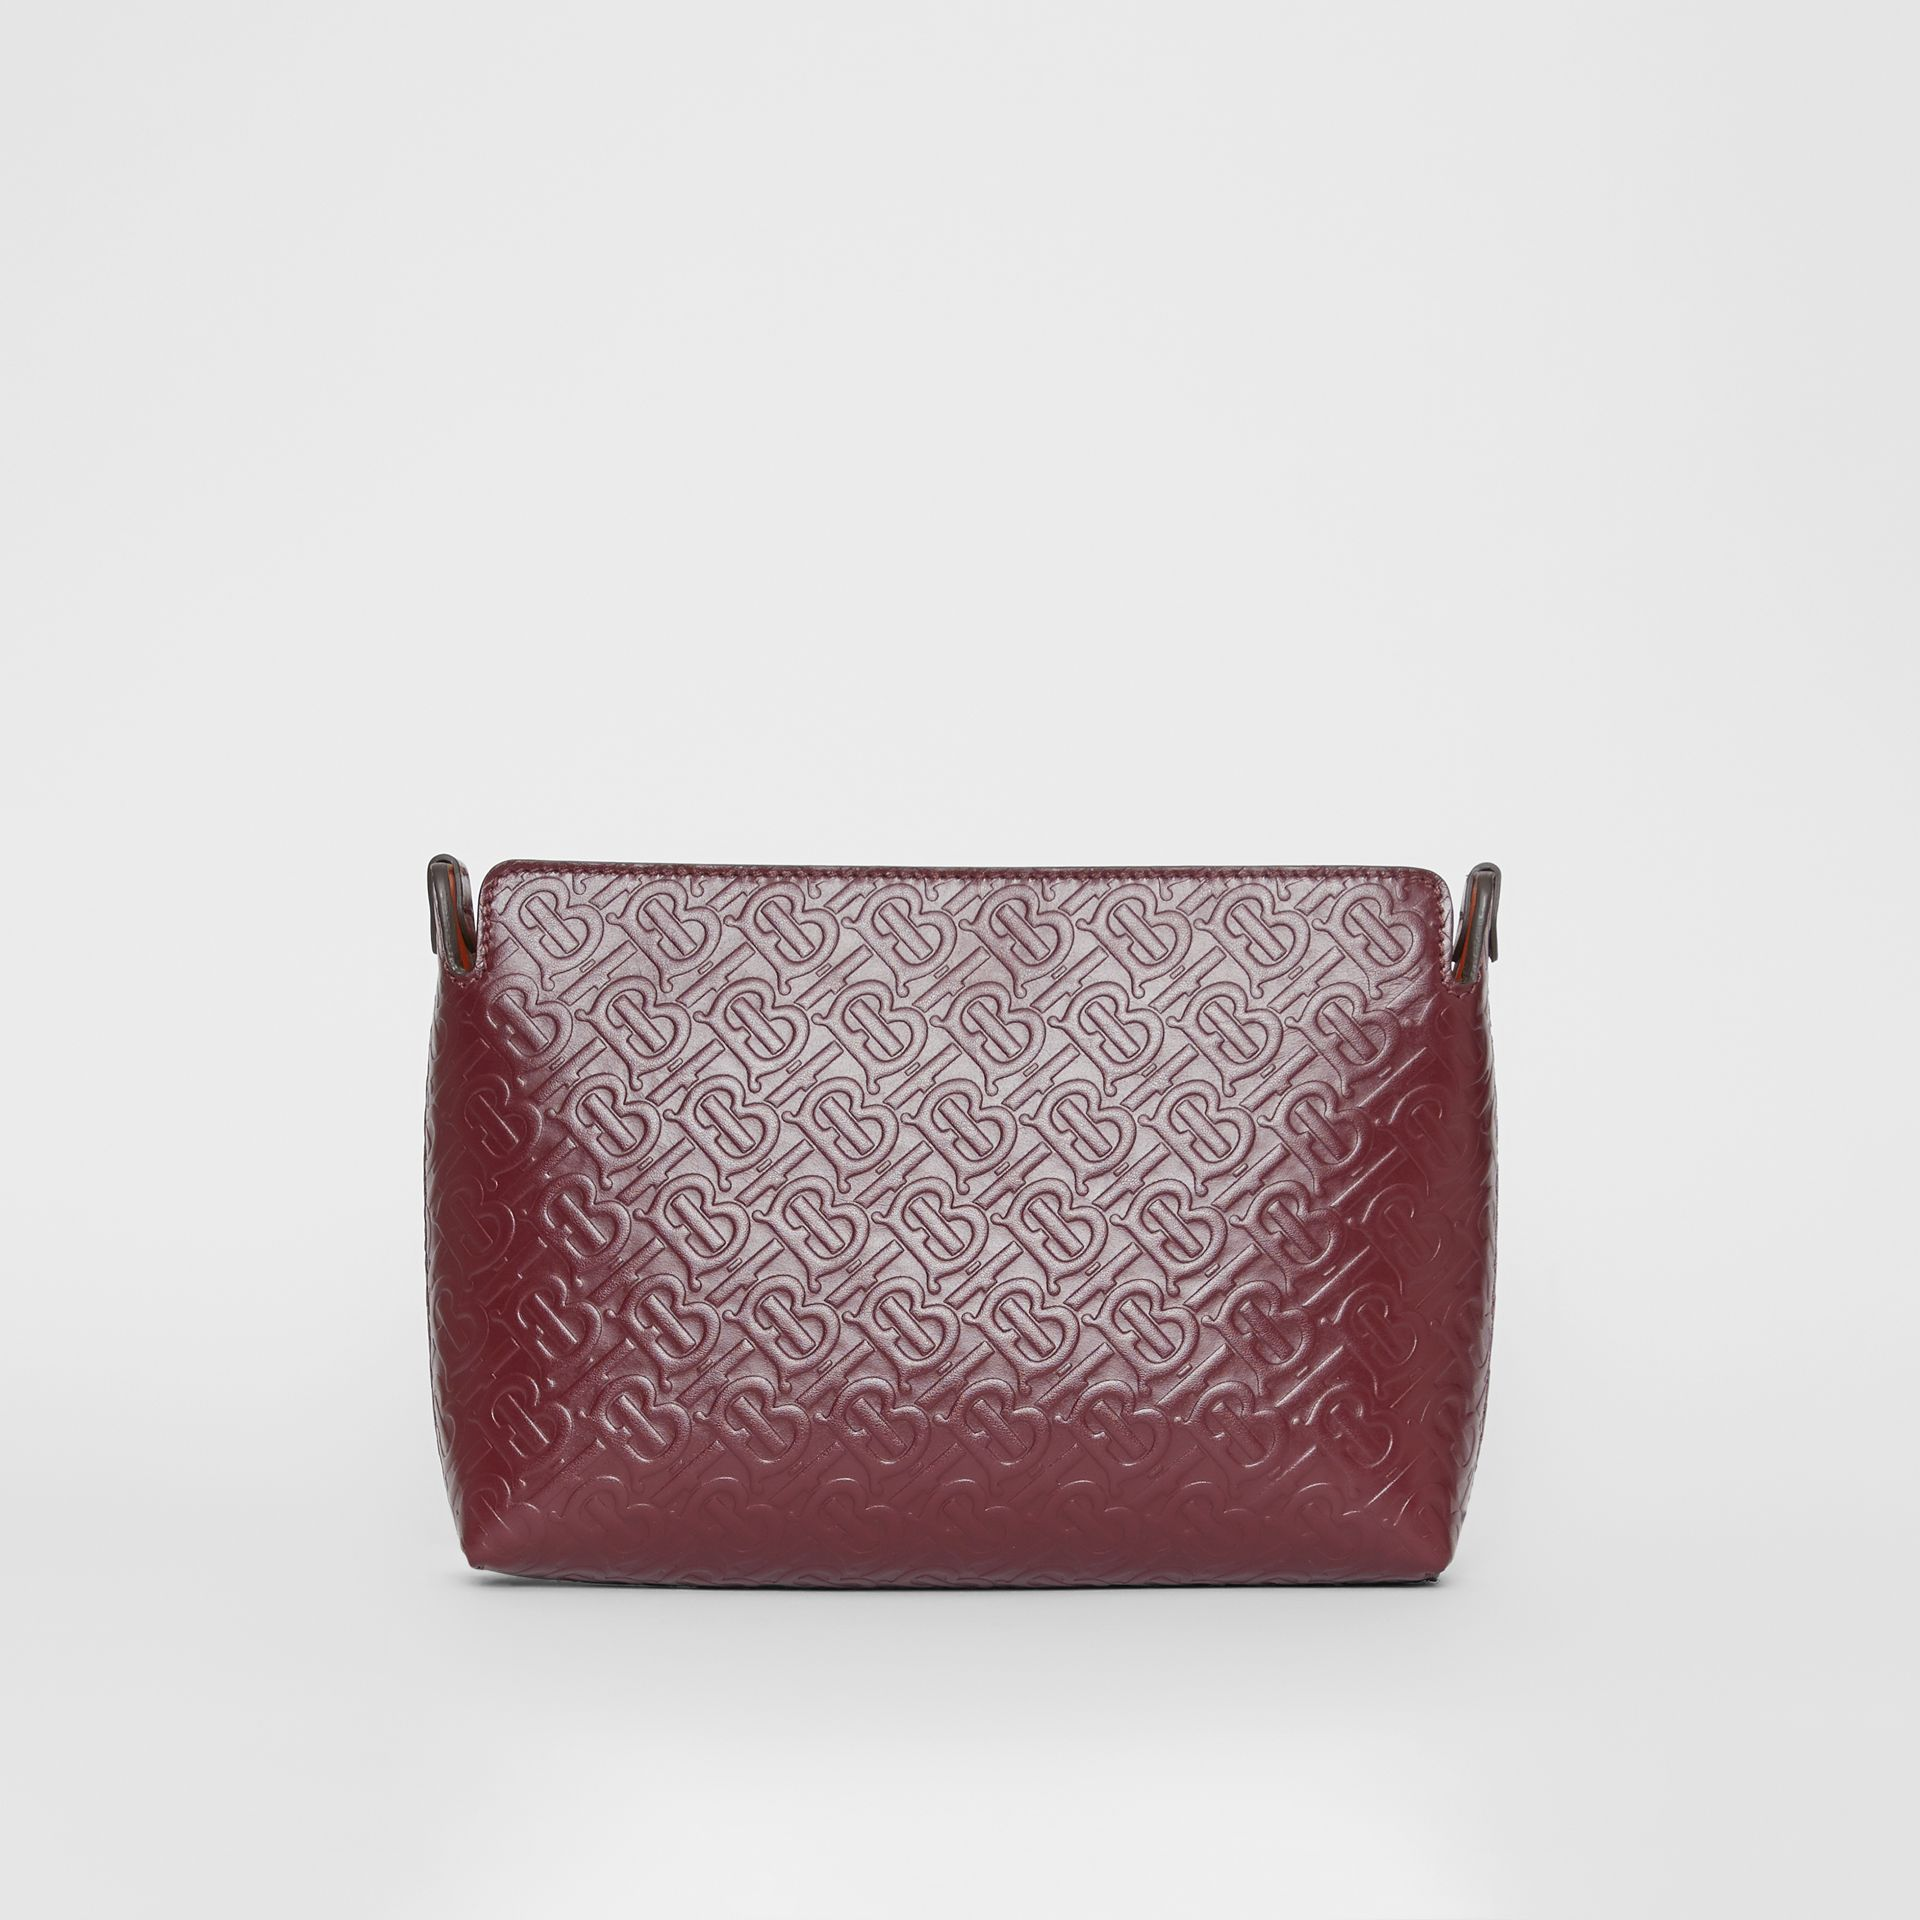 Medium Monogram Leather Clutch in Oxblood - Women | Burberry United Kingdom - gallery image 4